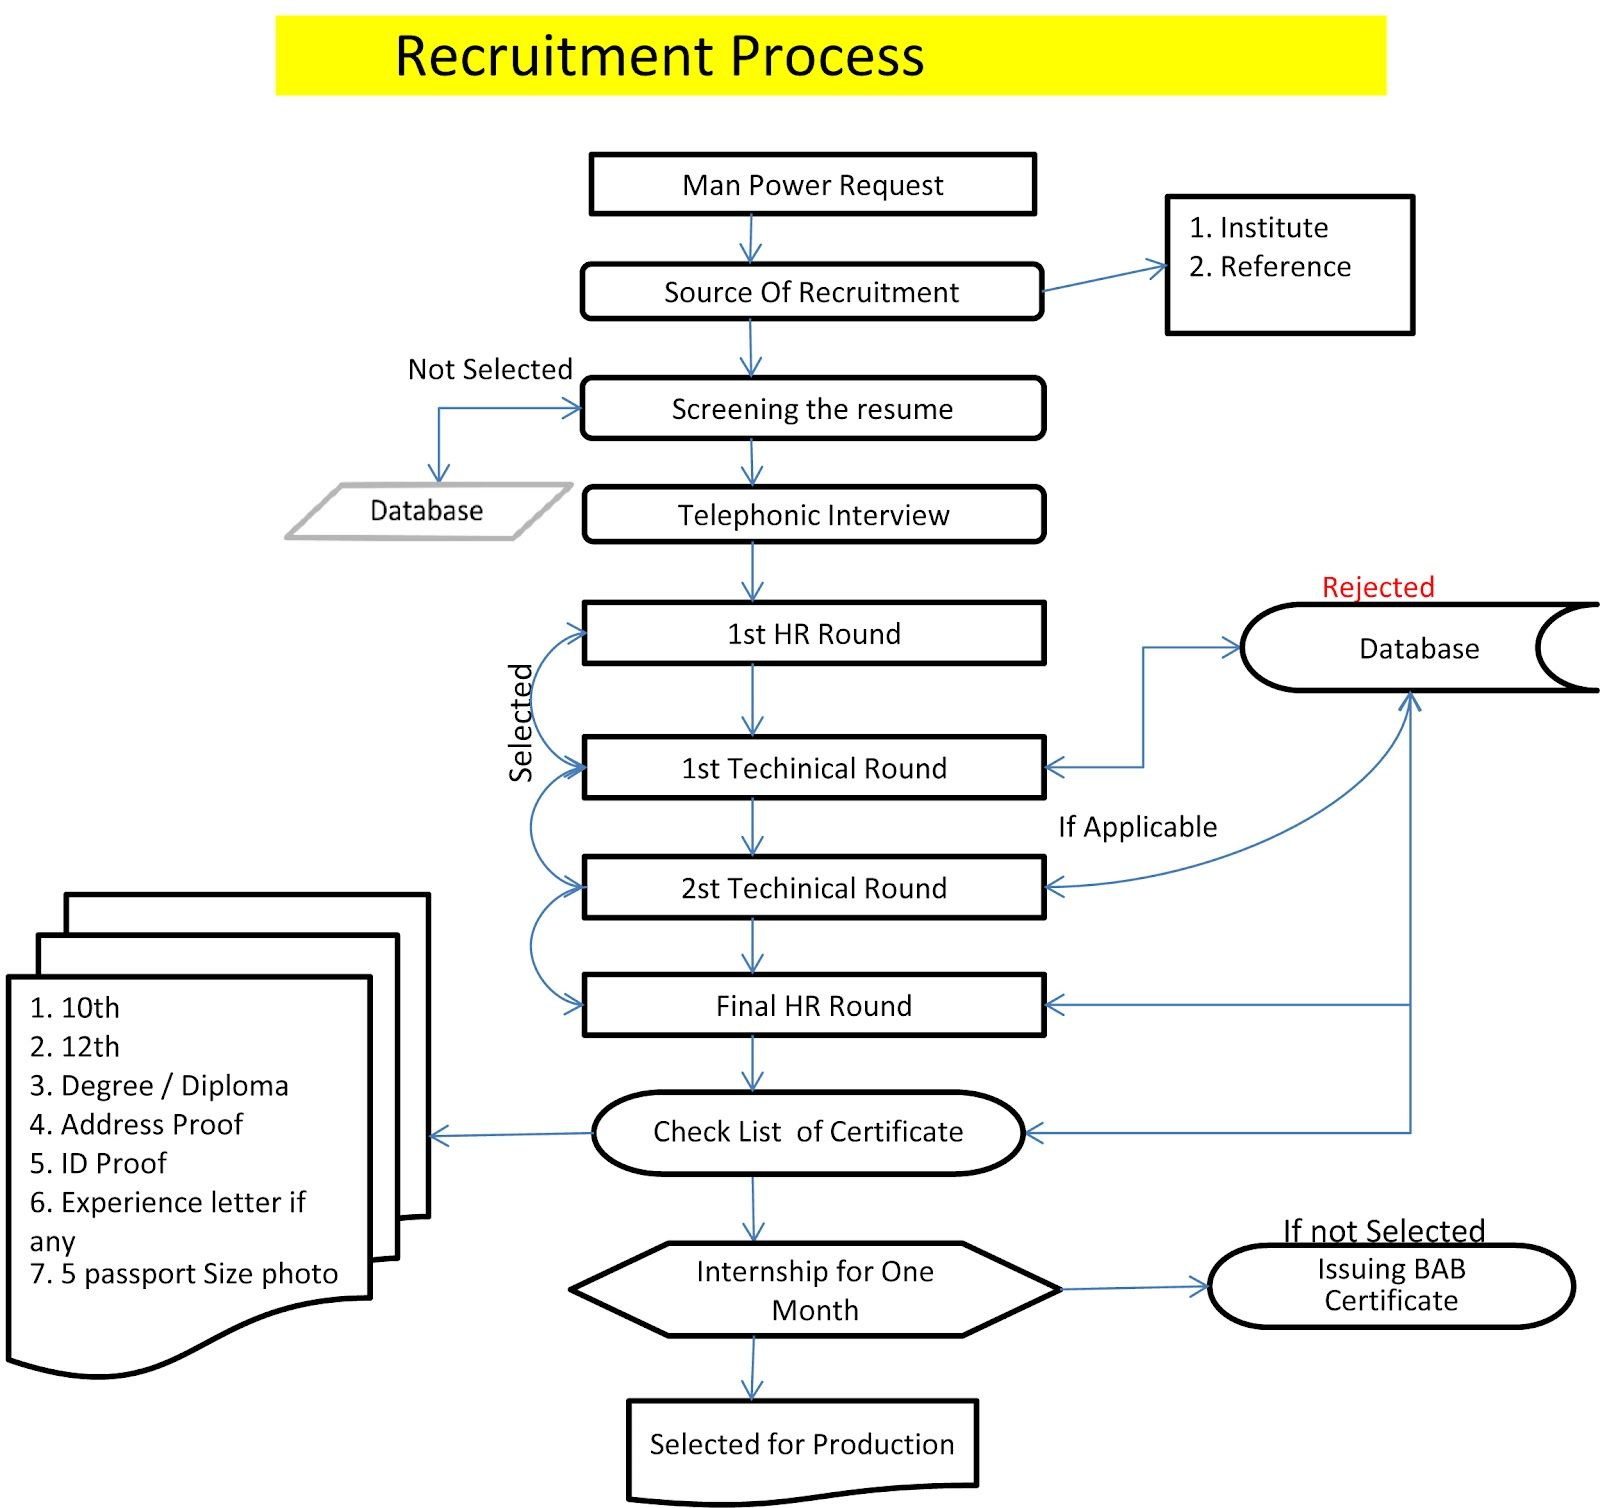 image result for ats recruitment flowchart